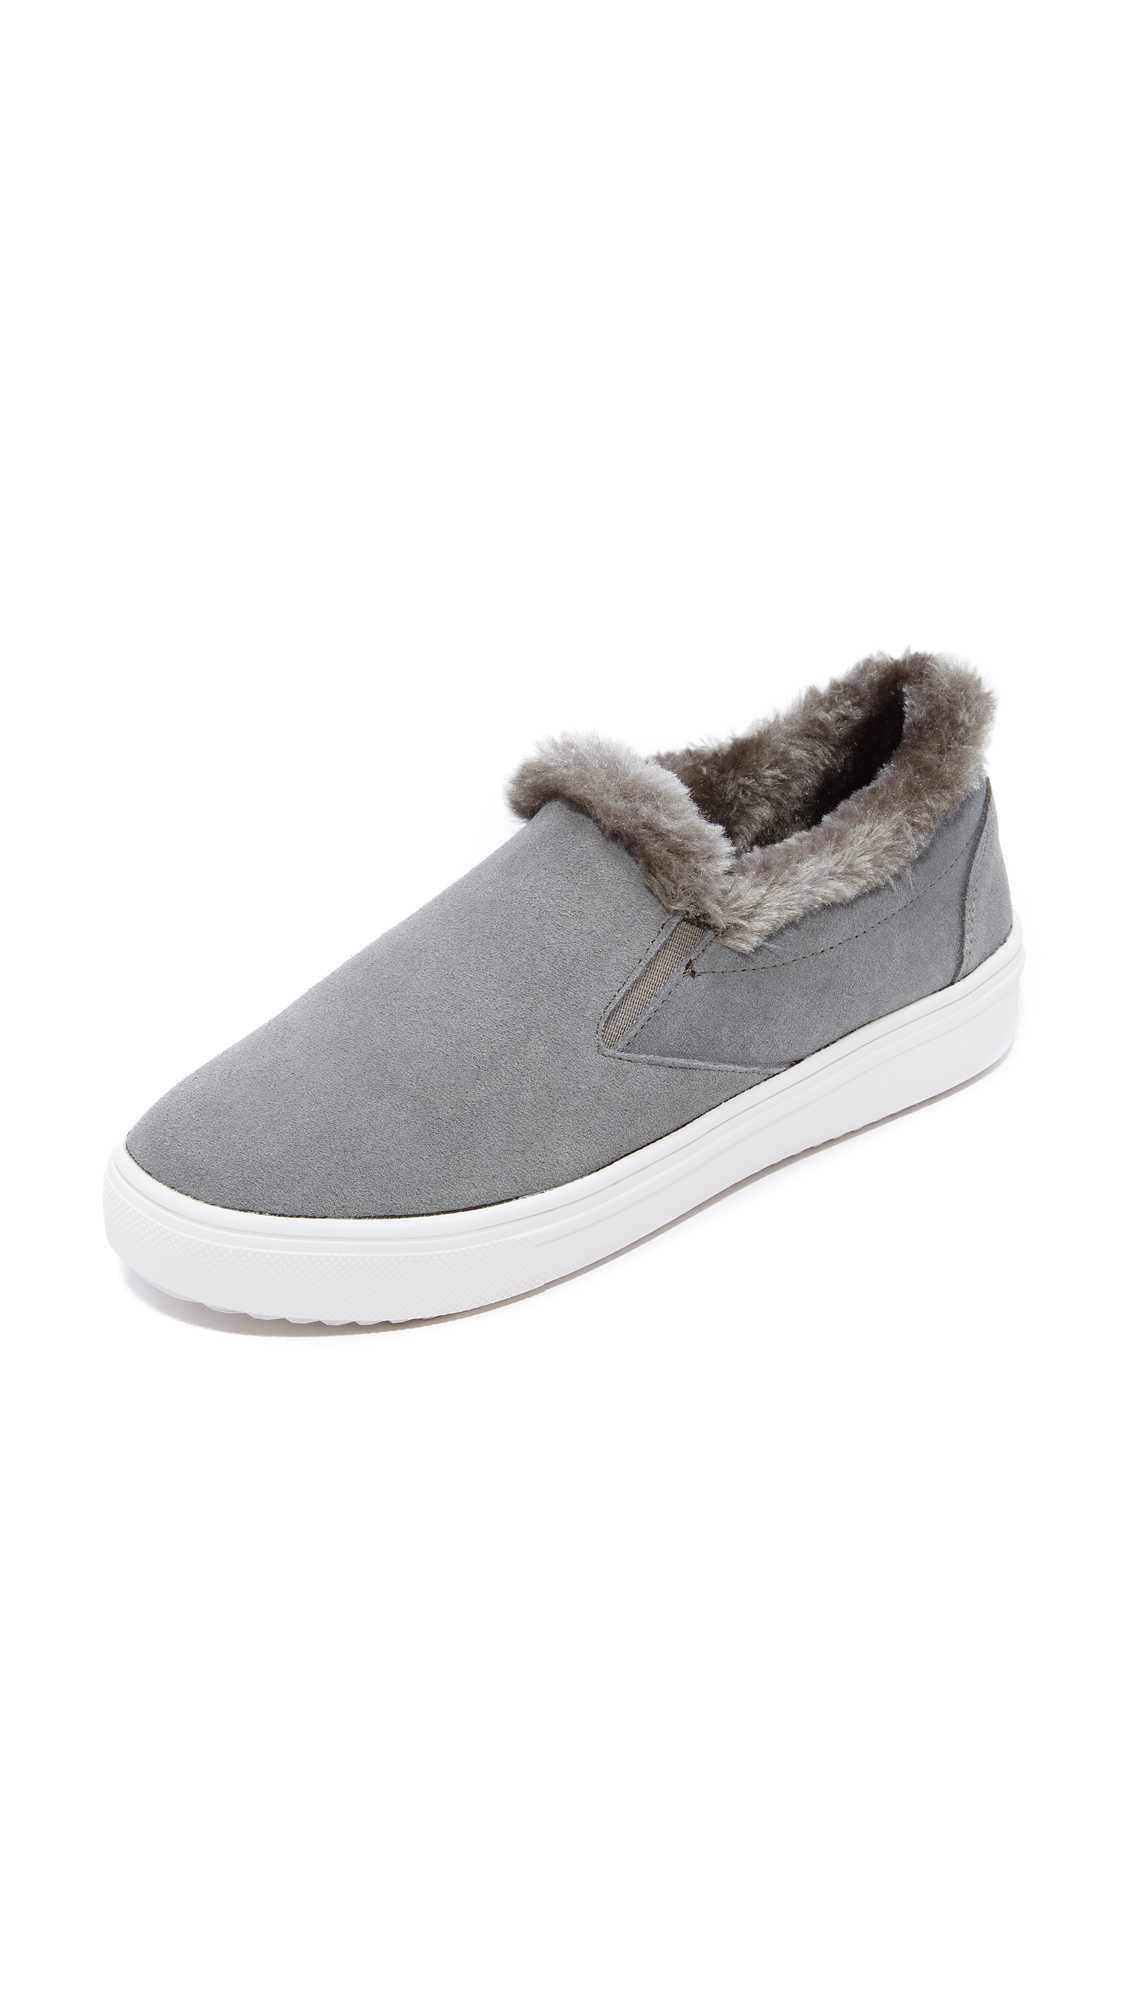 Steven Cuddles Faux Fur Sneakers - Grey